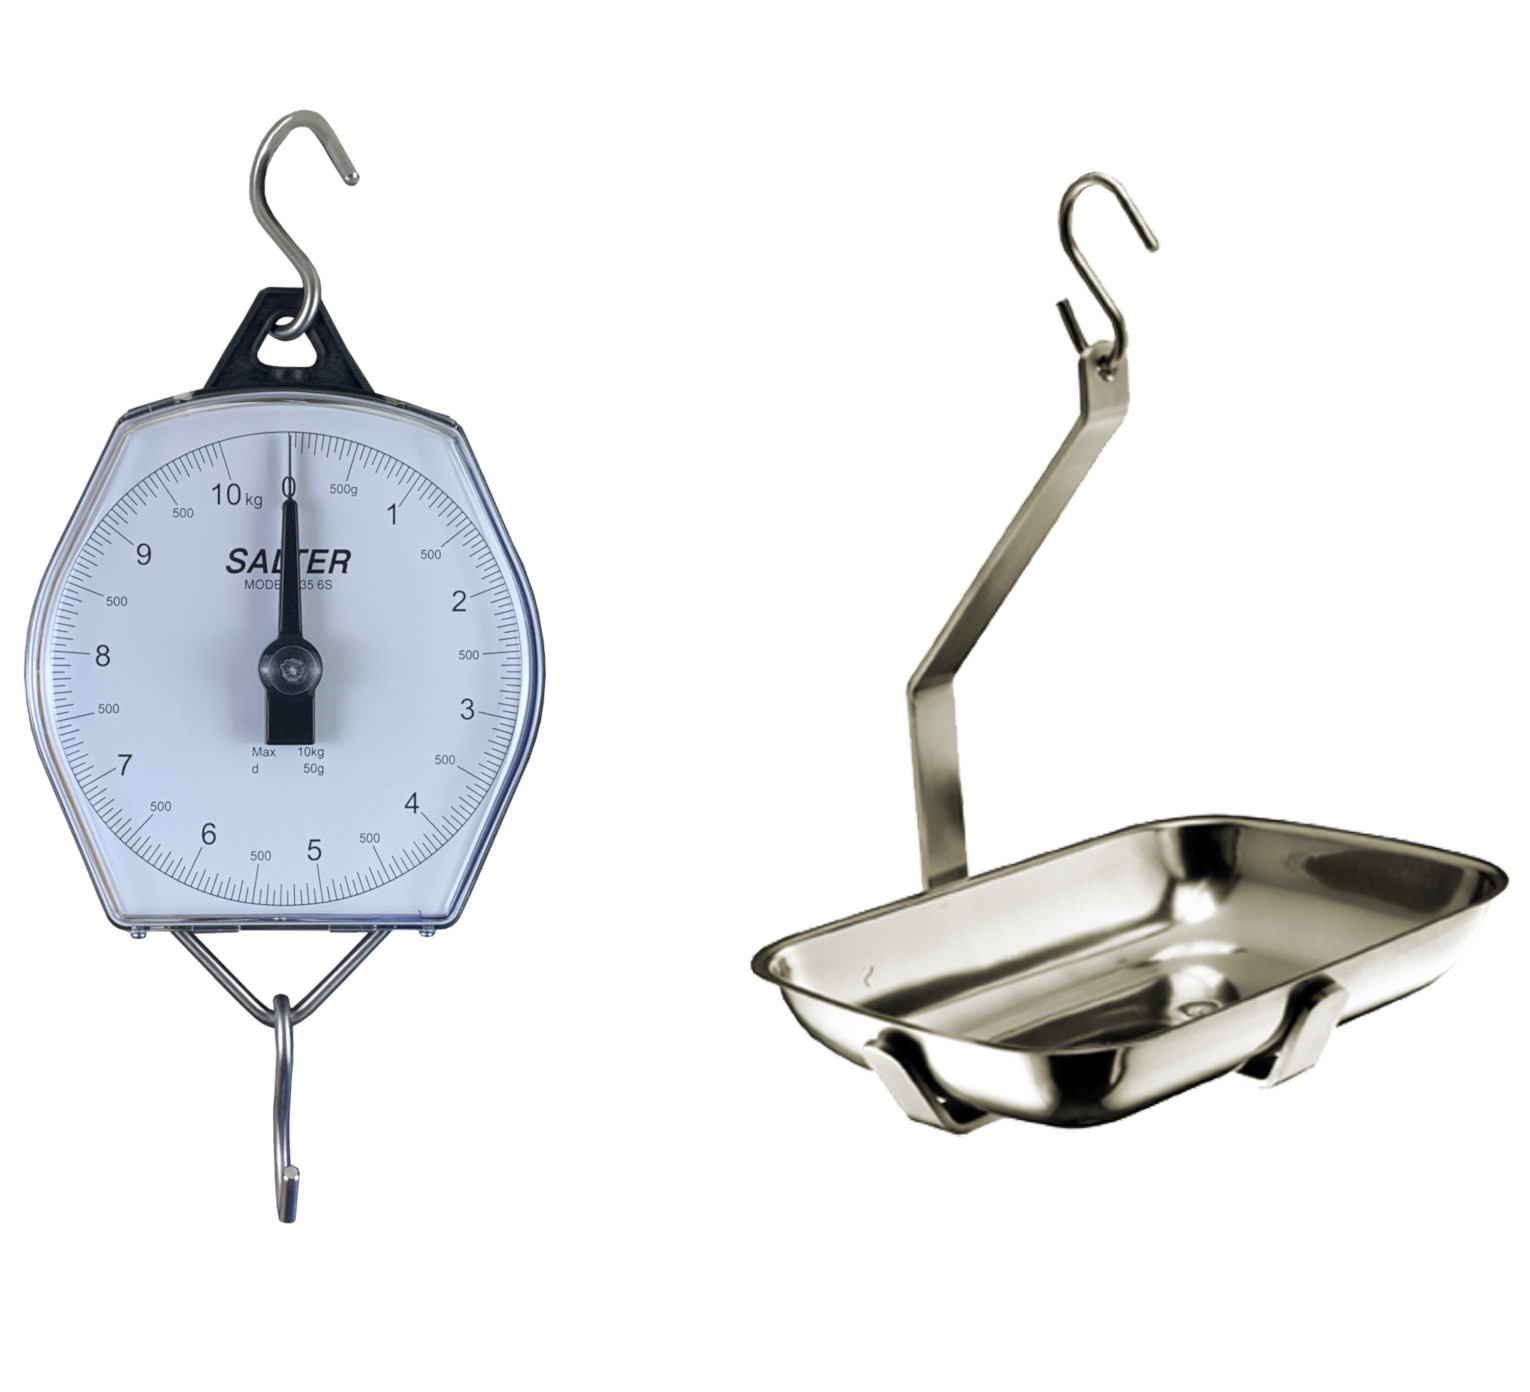 SALTER BRECKNELL 235-6s HANGING SCALE | weighingscales.com